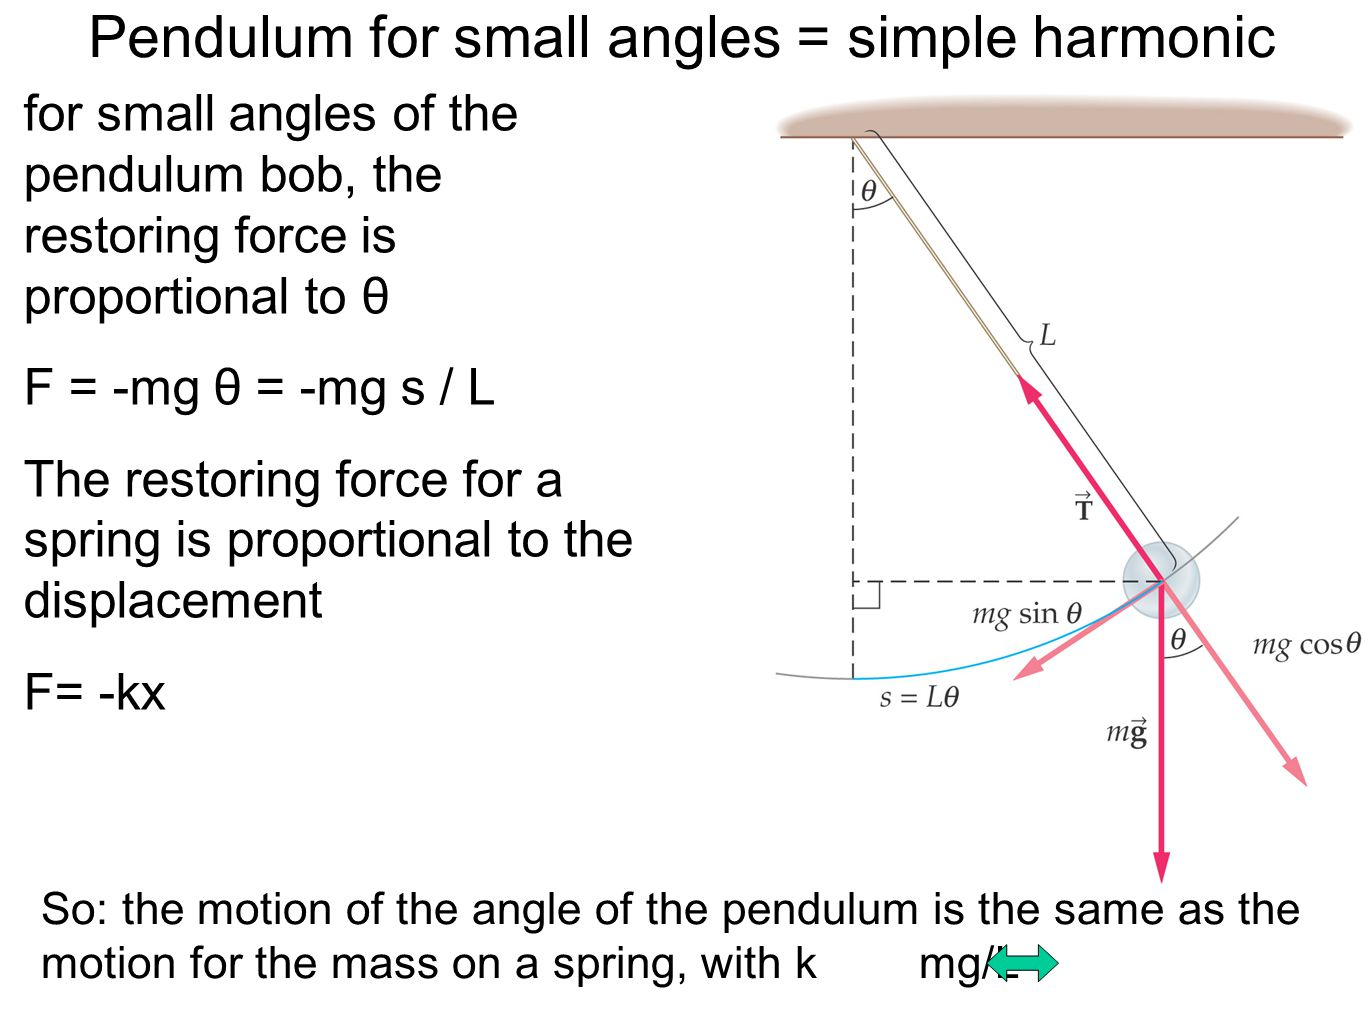 Pendulum for small angles = simple harmonic